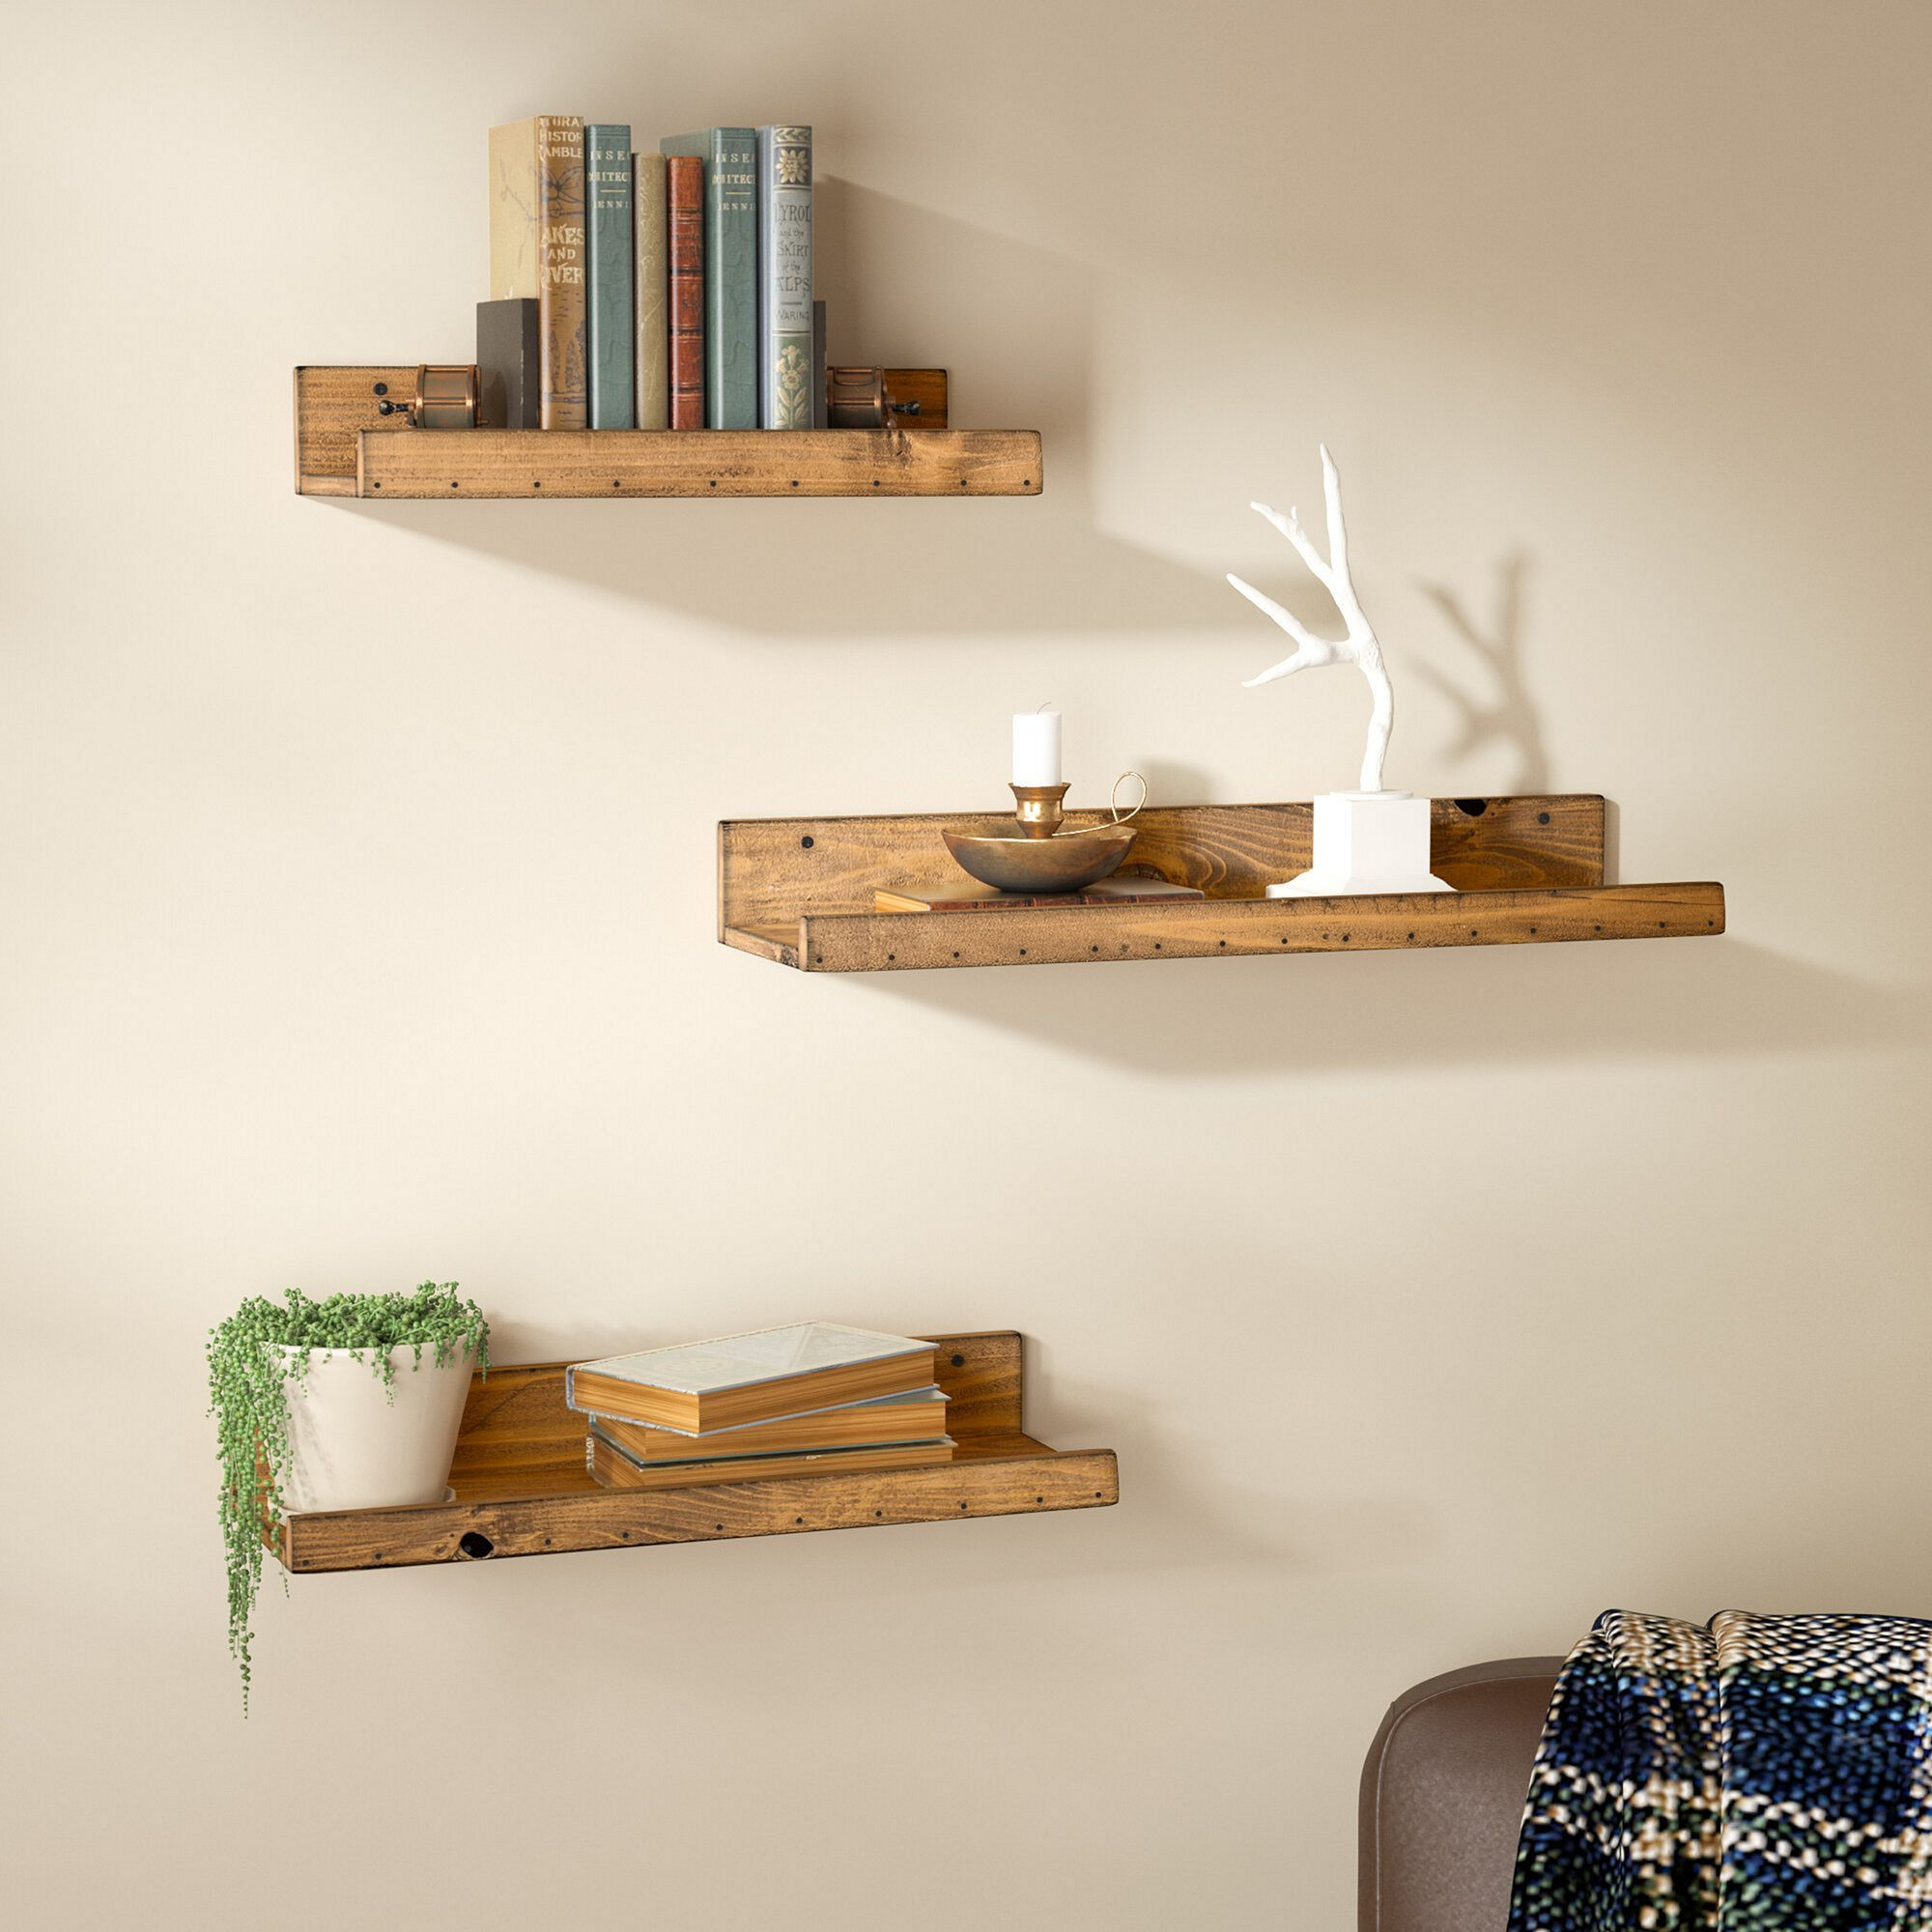 8 Diy Floating Rack Ideas For Stunning Living Room Decoration That Look More Elegant In 2020 Floating Shelves Wooden Floating Shelves Wood Floating Shelves